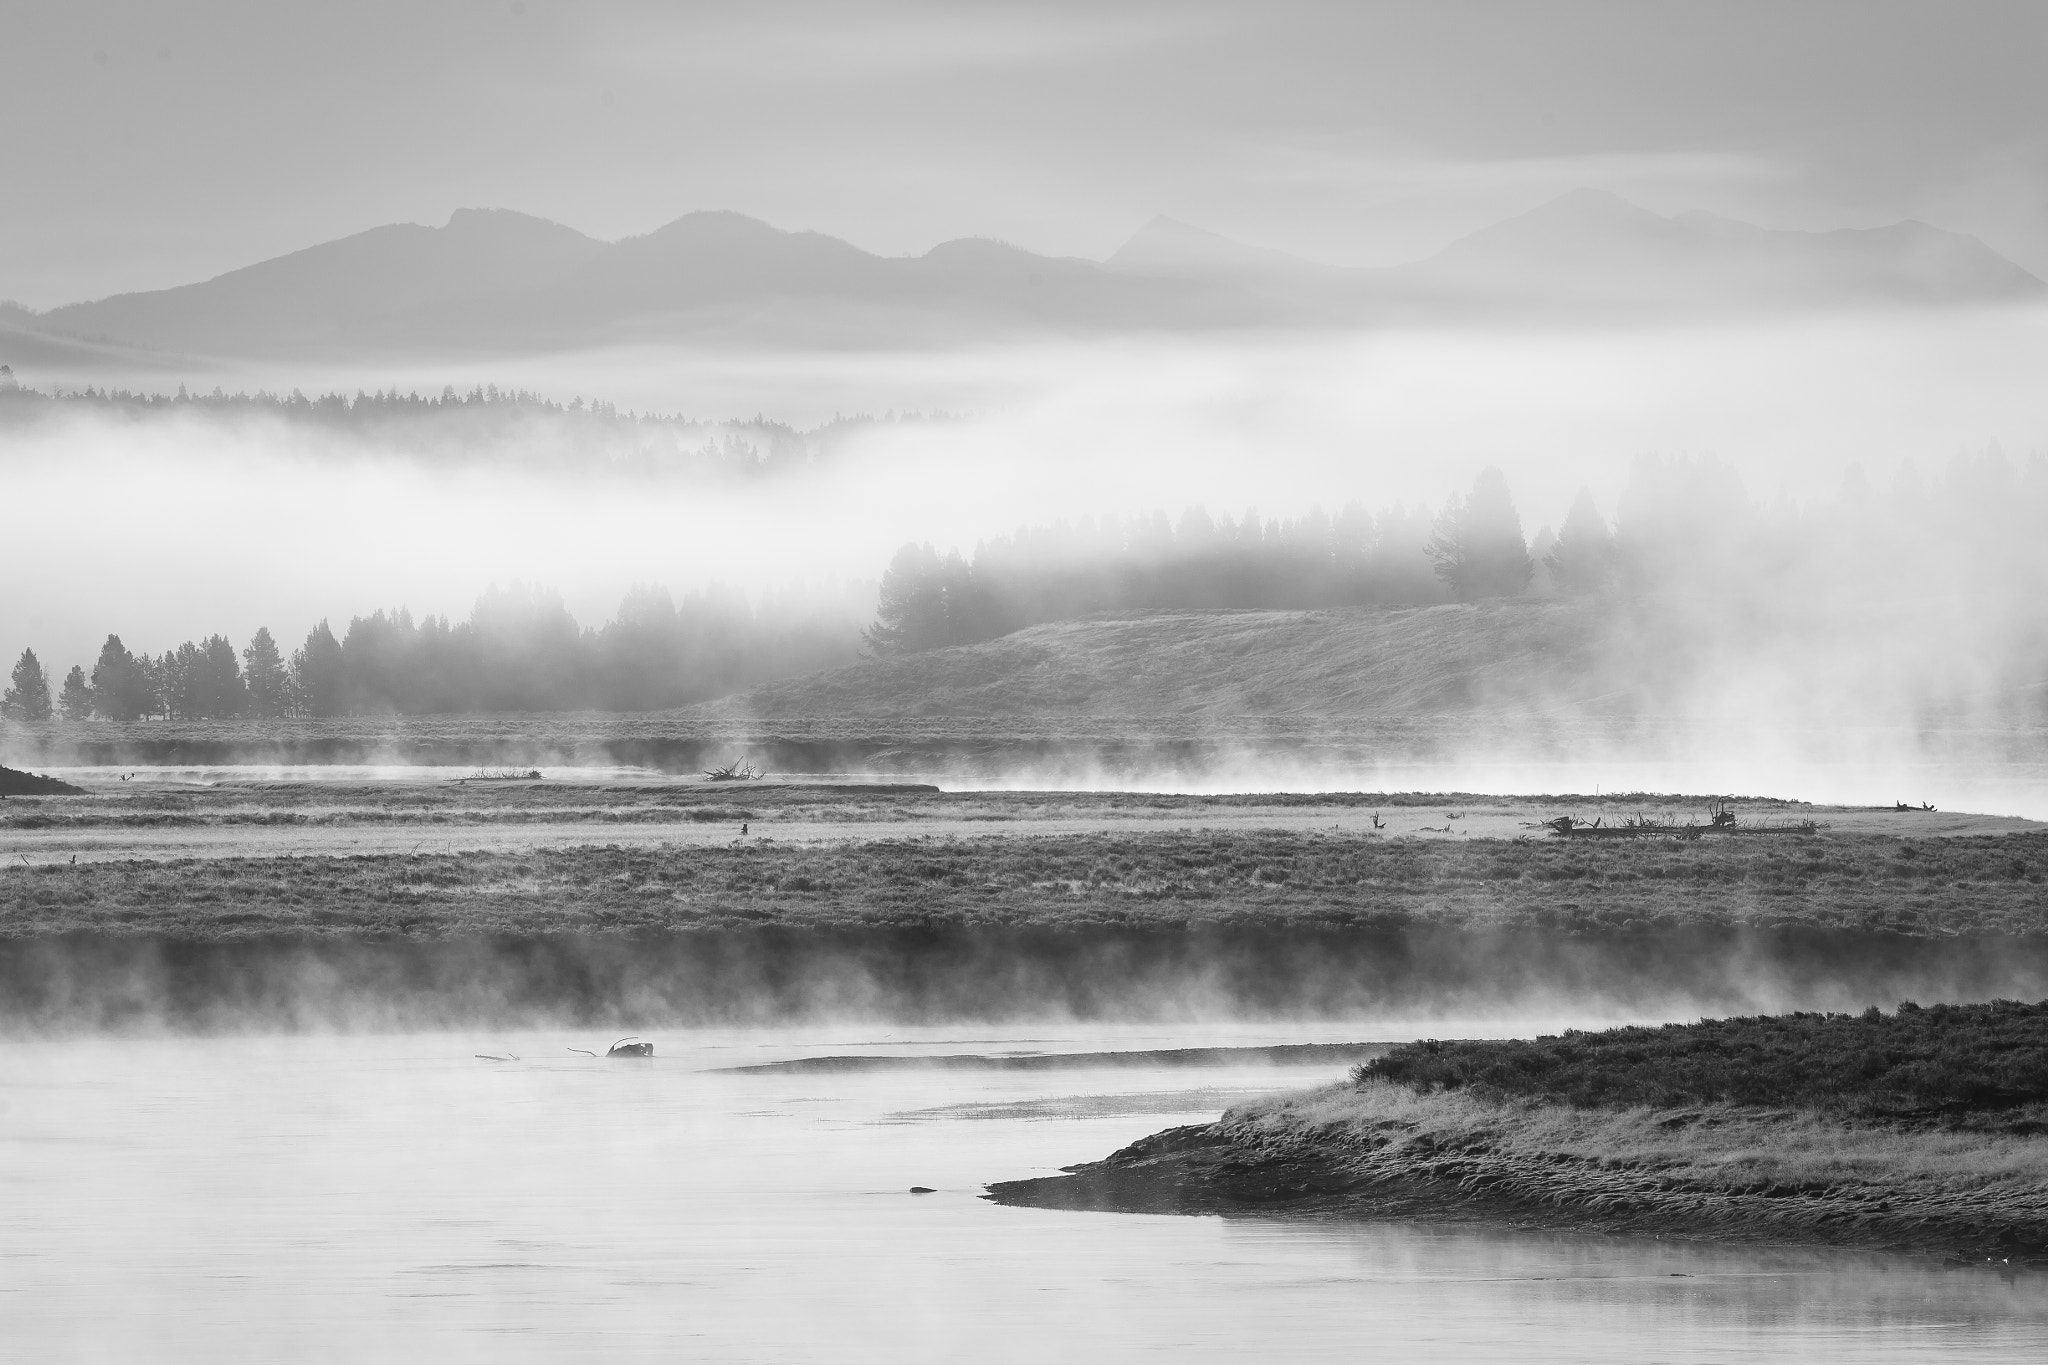 Photograph Fogscape by Jacques-Andre Dupont on 500px